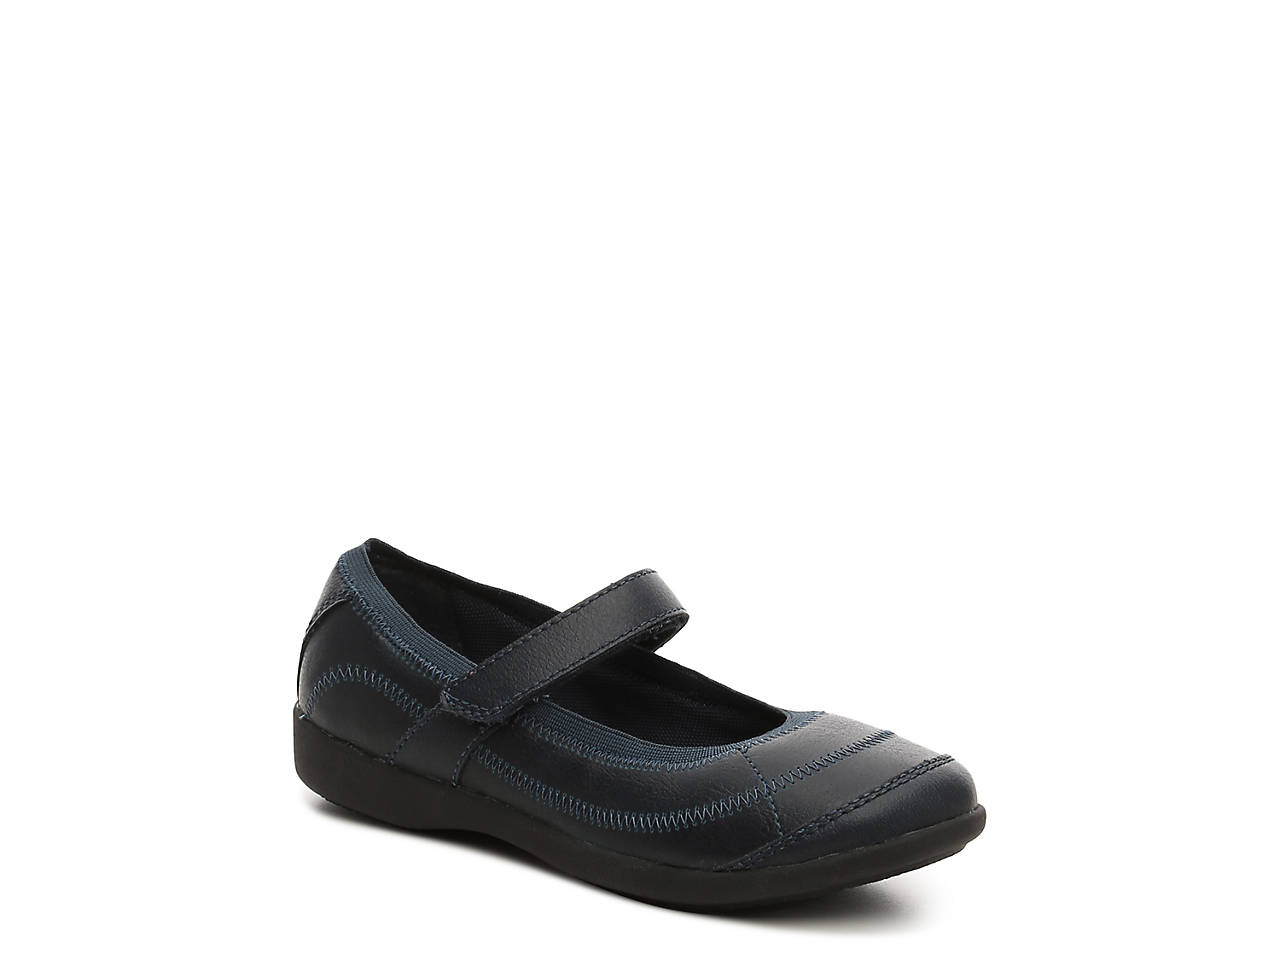 Dsw Shoes Canada Hush Puppies